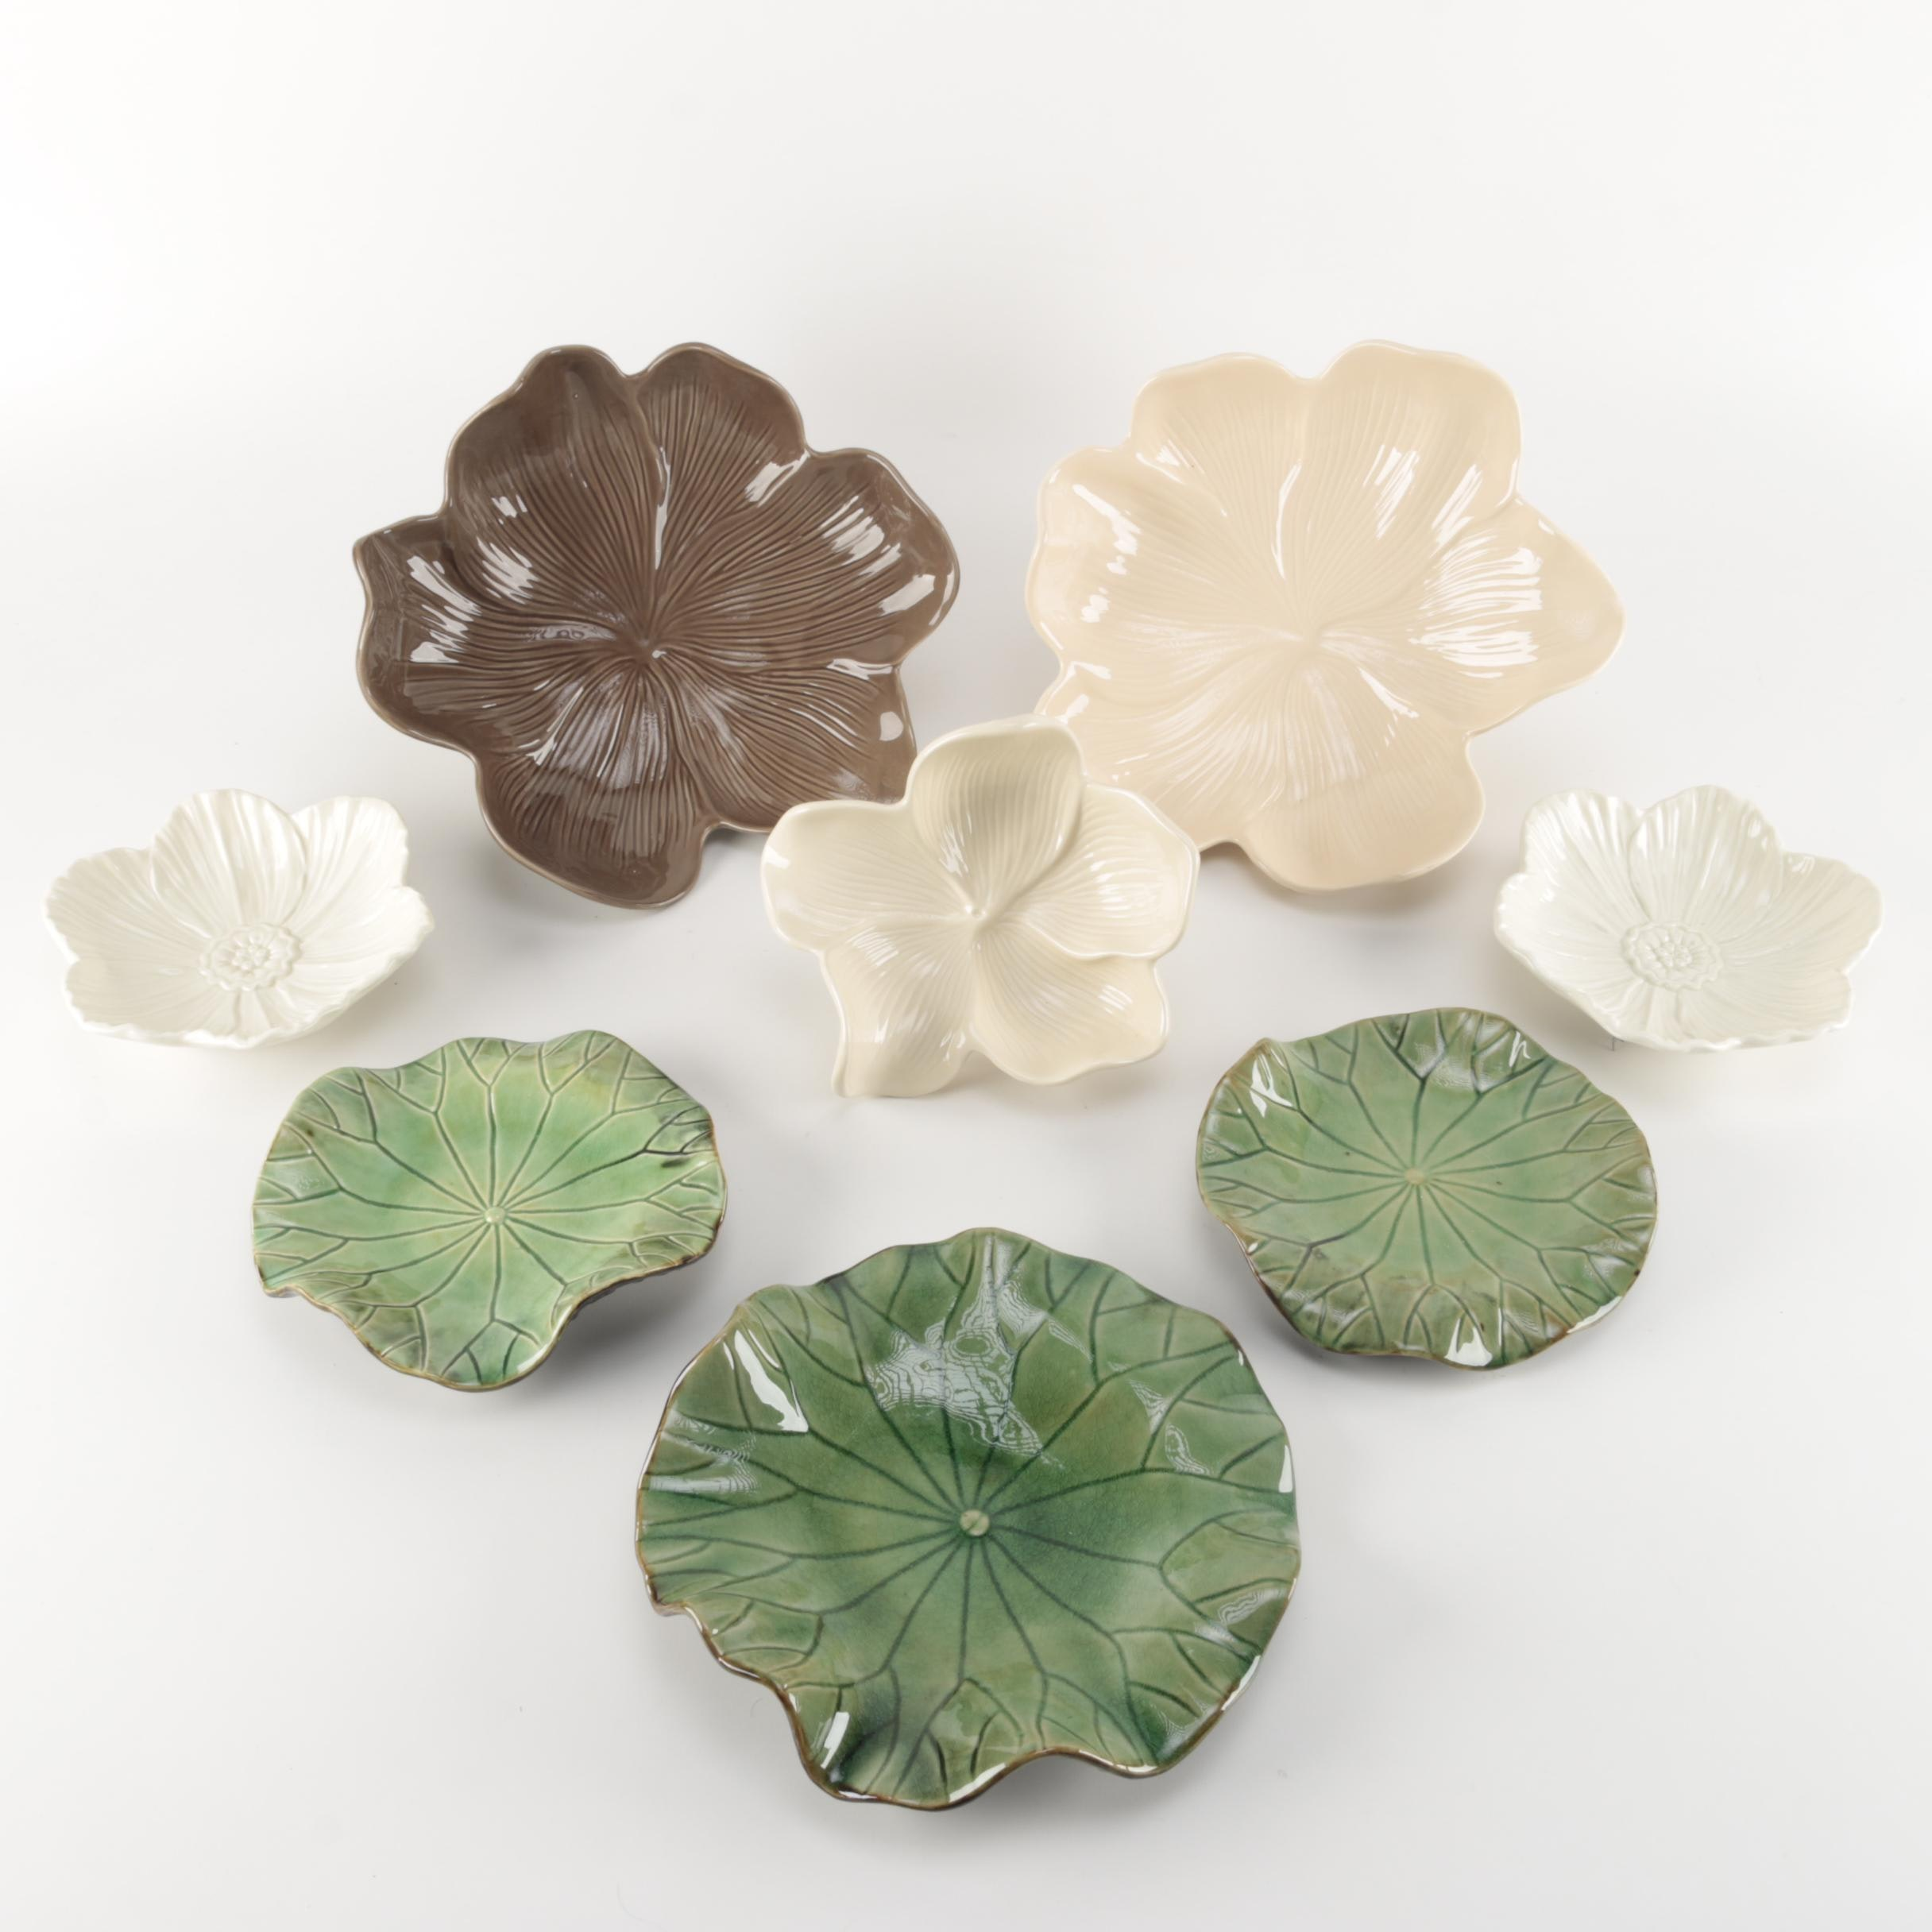 Arhaus Flower and Lily Pad Dishes